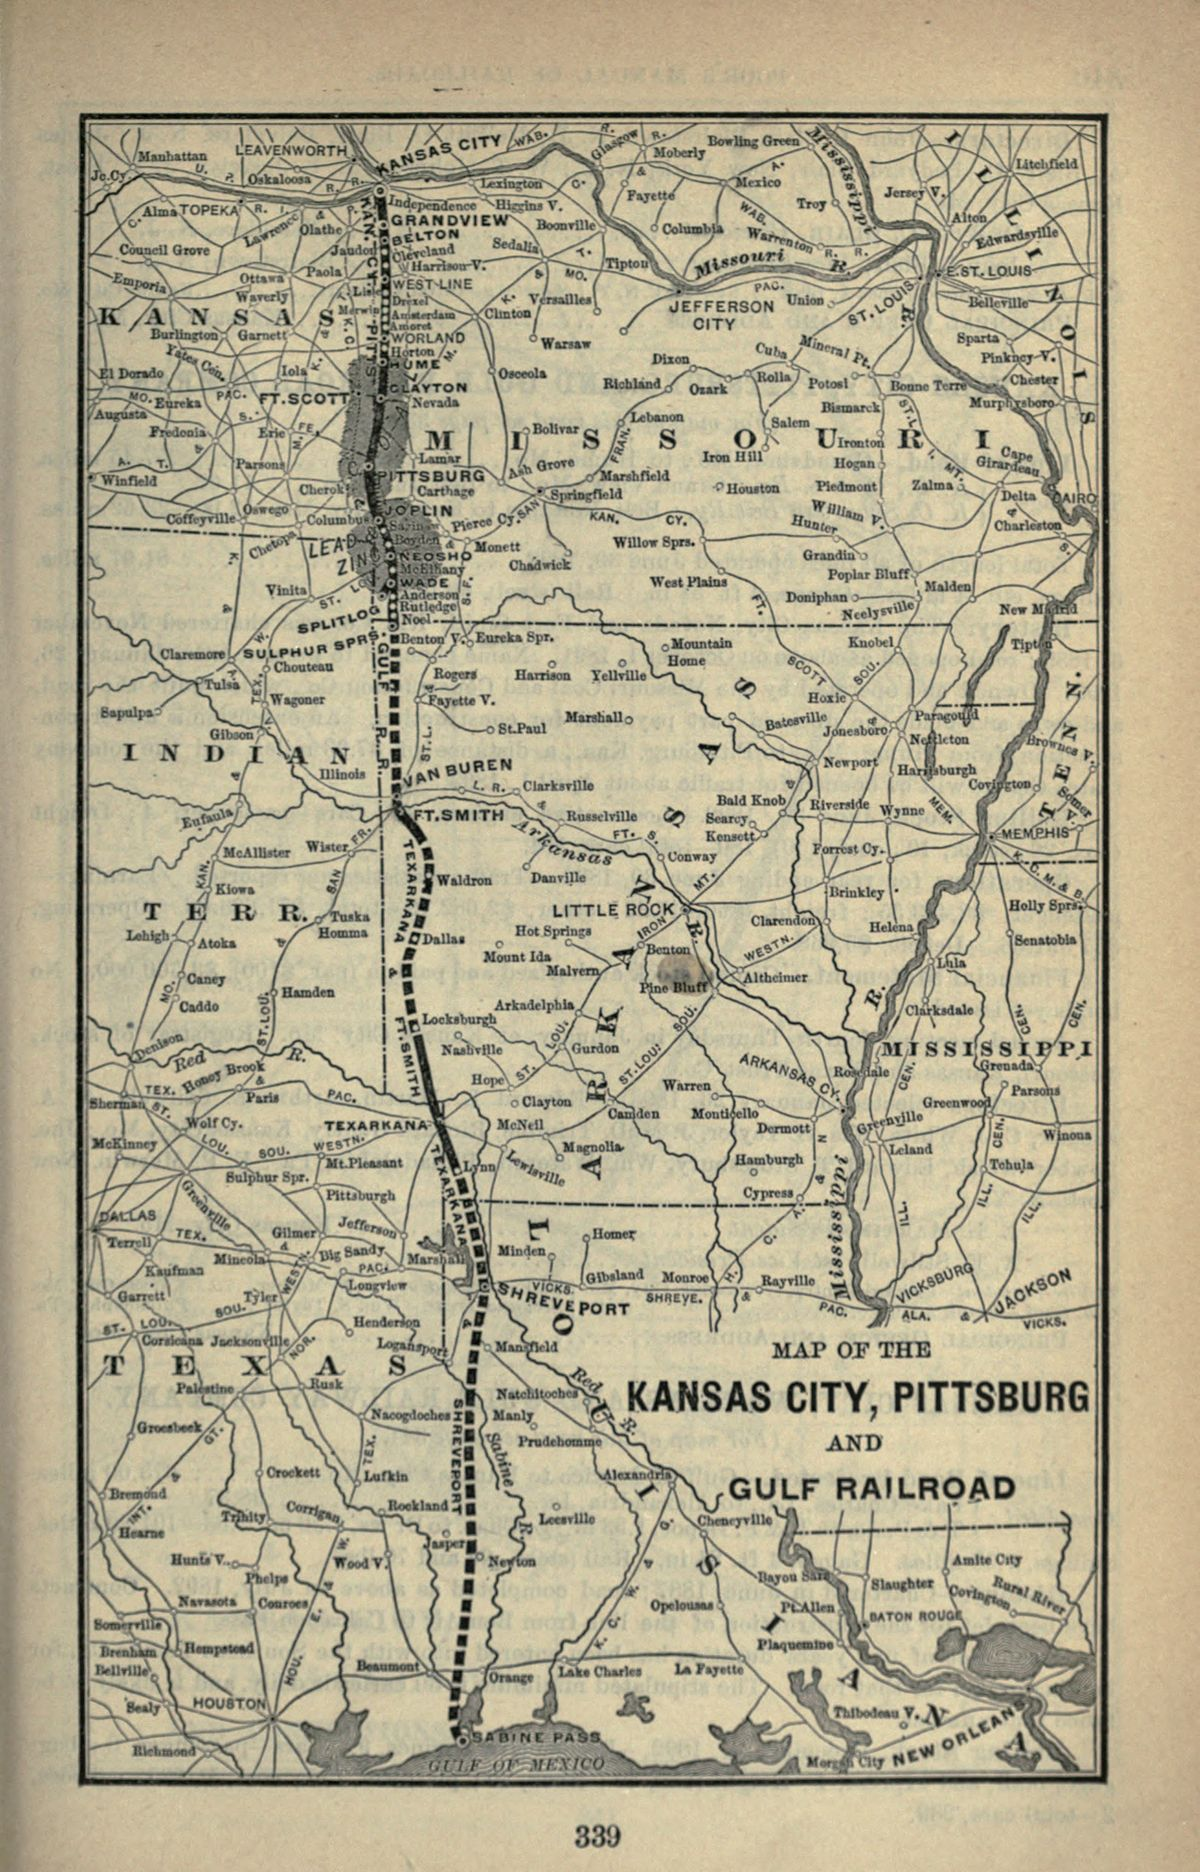 Texarkana and Fort Smith Railway - Wikipedia on canadian pacific railway limited, canadian national railway company, wabash route map, chicago great western route map, lehigh valley railroad route map, norfolk & western route map, louisville and nashville railroad, csx transportation, burlington northern railroad, central pacific route map, montana rail link route map, east broad top route map, csx route map, southern railway route map, csx corporation, southern belle, illinois central railroad, norfolk southern railway, colorado & southern route map, union pacific railroad, penn central route map, pan am railways, union pacific railroad route map, atlantic coast line railroad, texas mexican railway, norfolk southern route map, virginia & truckee route map, kansas city rail system, soo line railroad, grand trunk western railroad, general mills, bnsf route map, class i railroad, dallas area rapid transit route map, nickel plate road route map, bc rail route map, southern railway, amtrak route map, via rail,